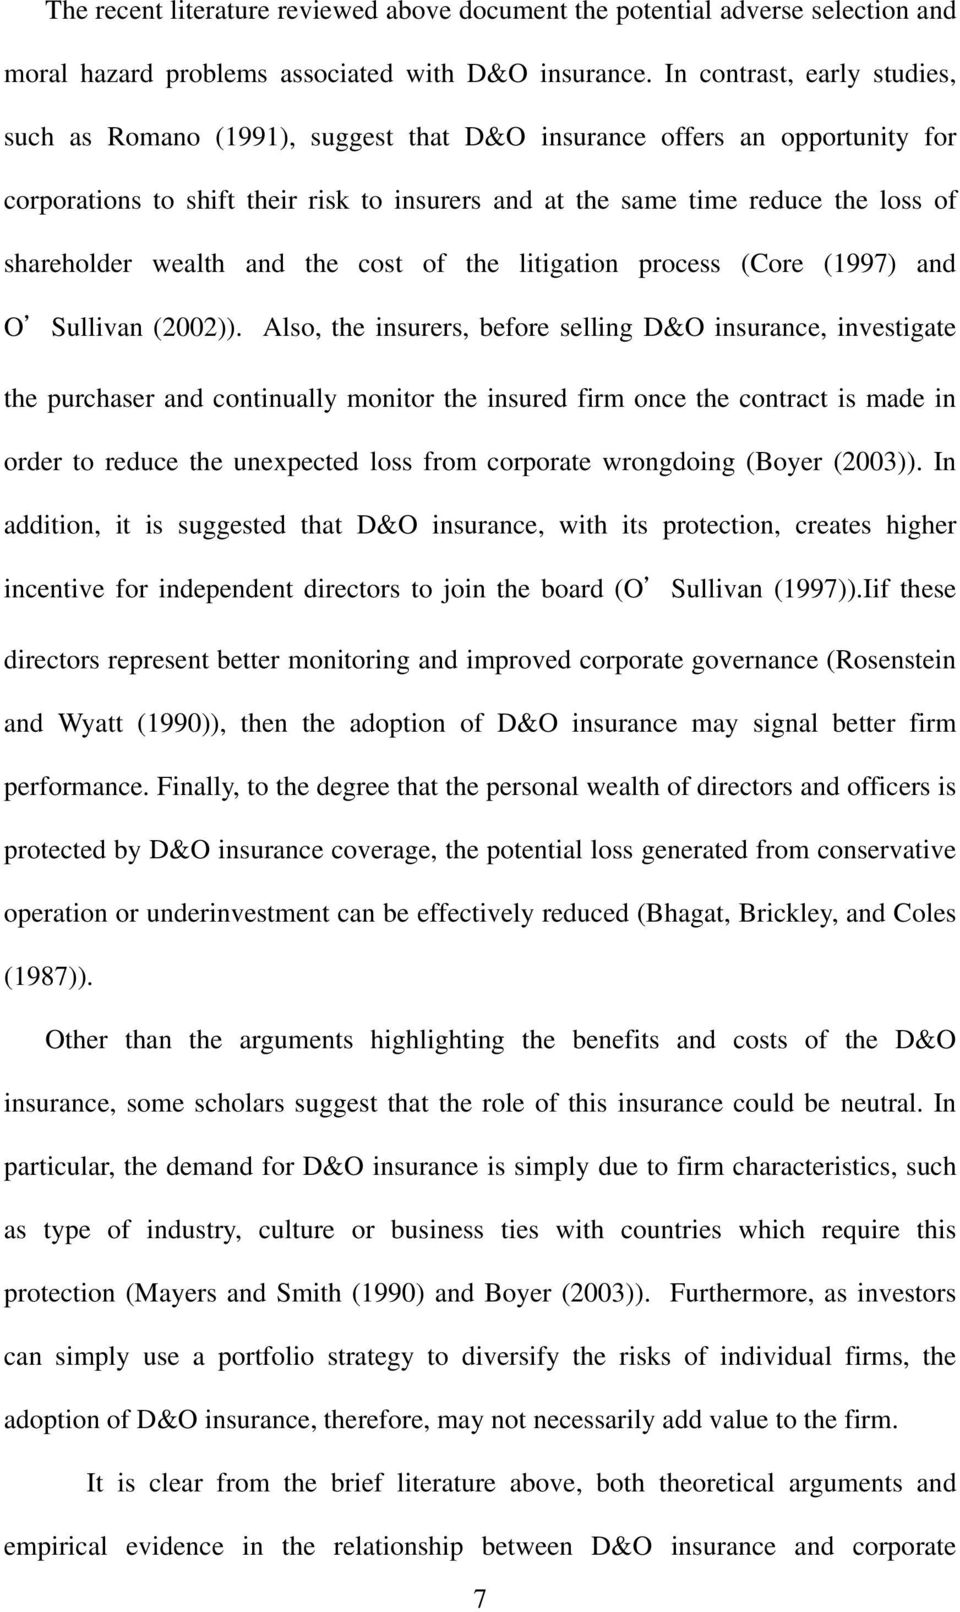 shareholder wealth and the cost of the litigation process (Core (1997) and O'Sullivan (2002)).